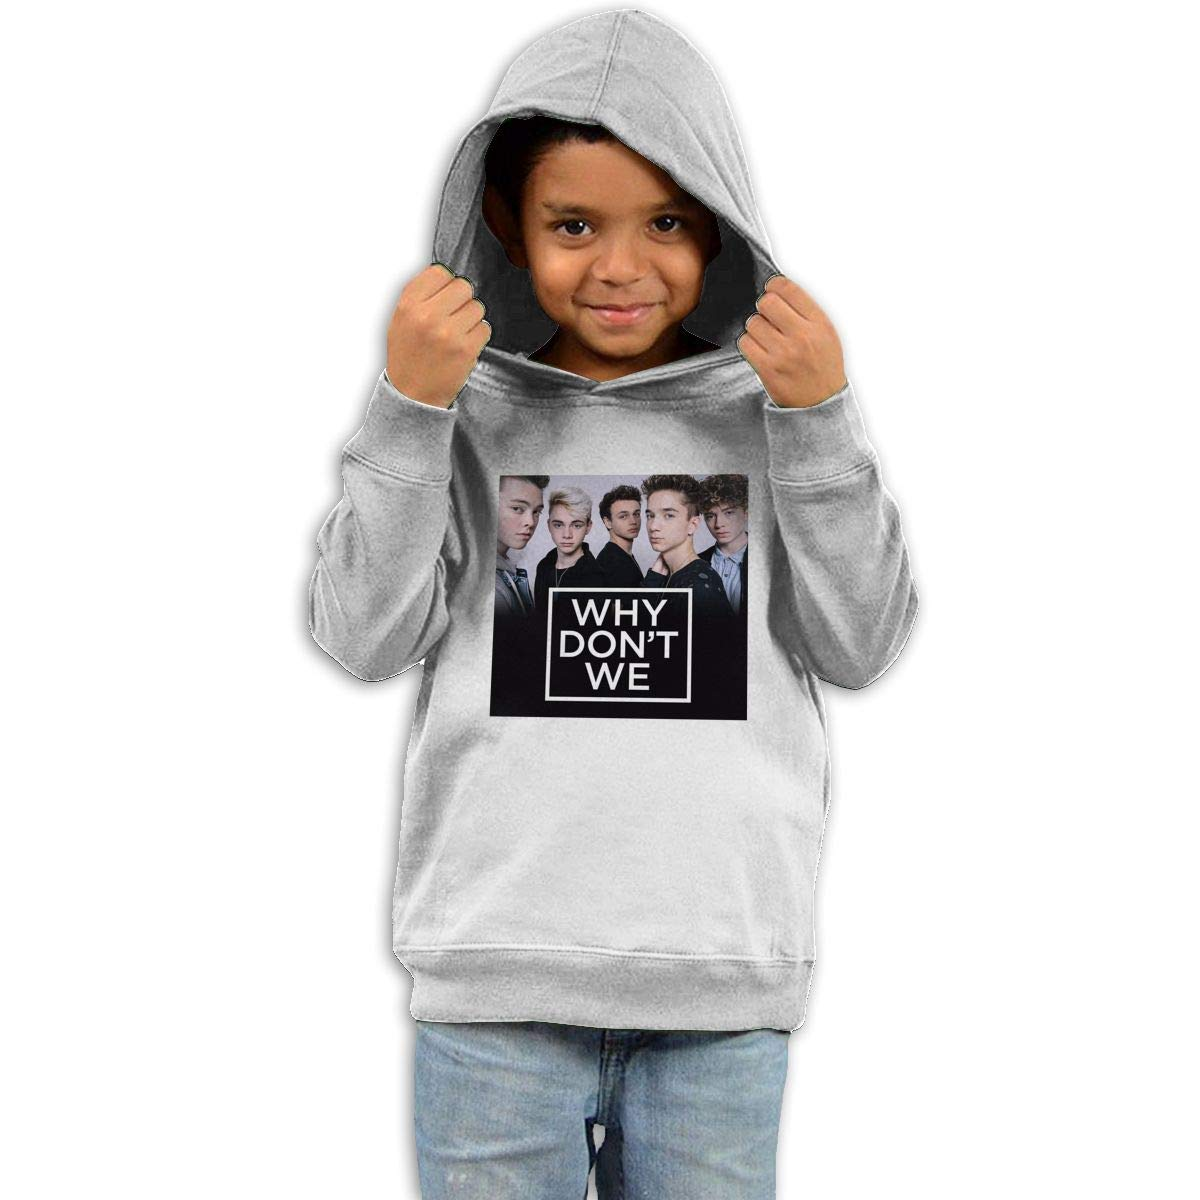 Stacy J. Payne Toddler Why Don't We Funny Sweater42 White